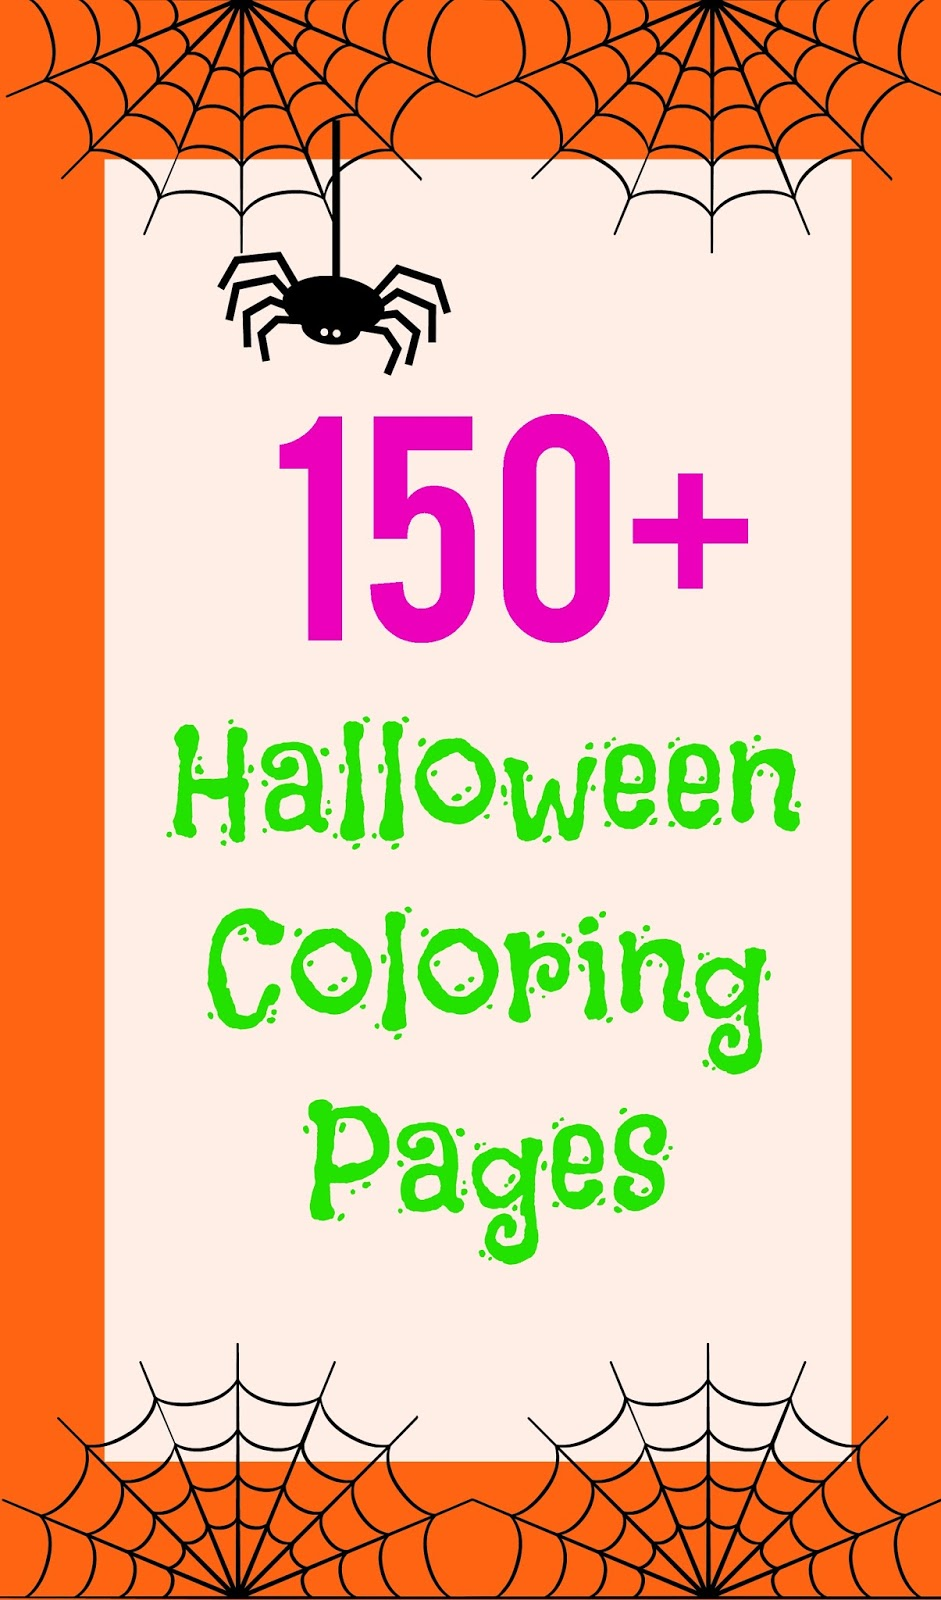 coloring pages halloween safety videos - photo#47